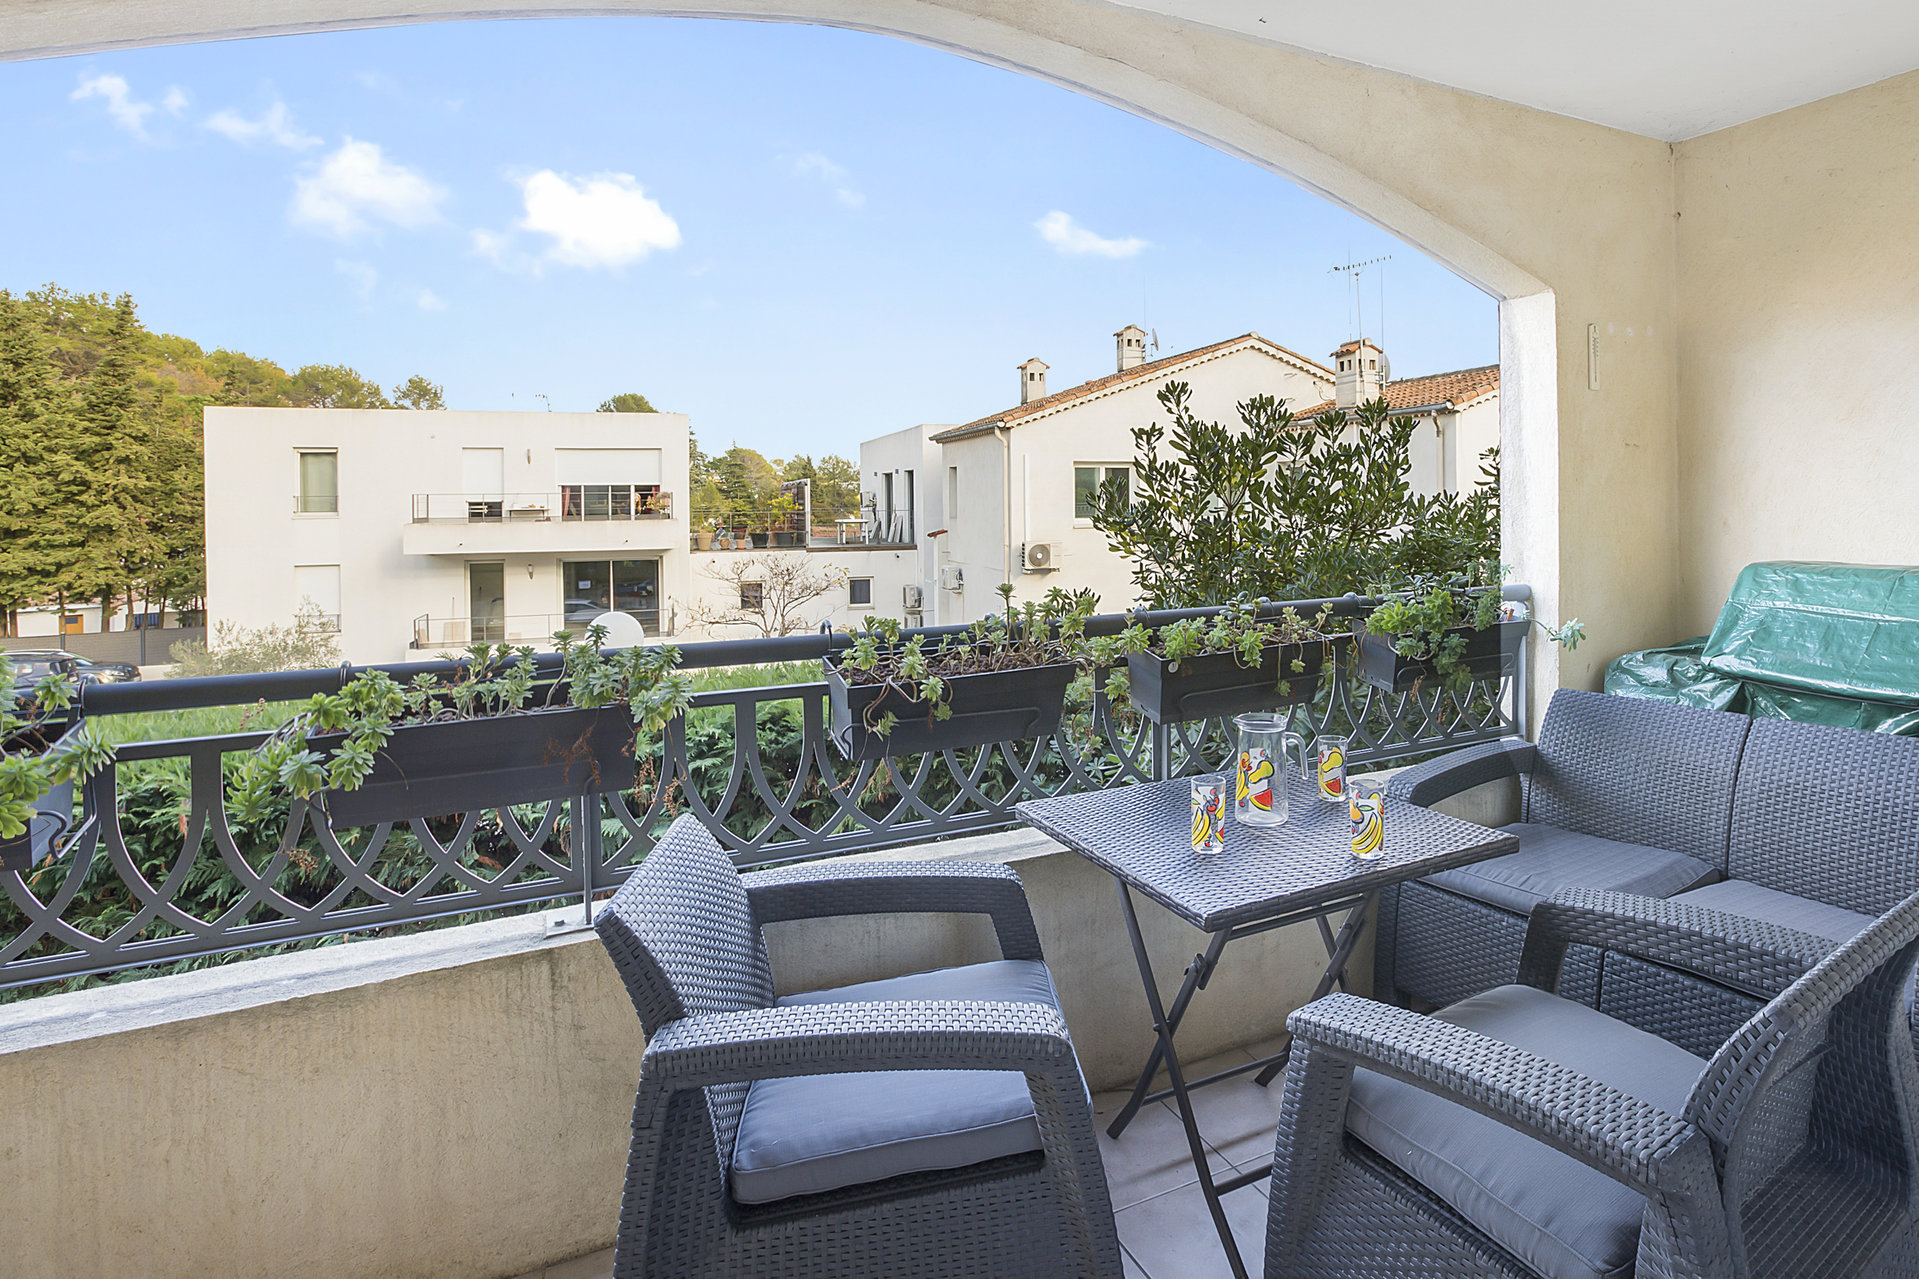 Super 1/2 bed apartment in a recent residence within walking distance of the village of Valbonne